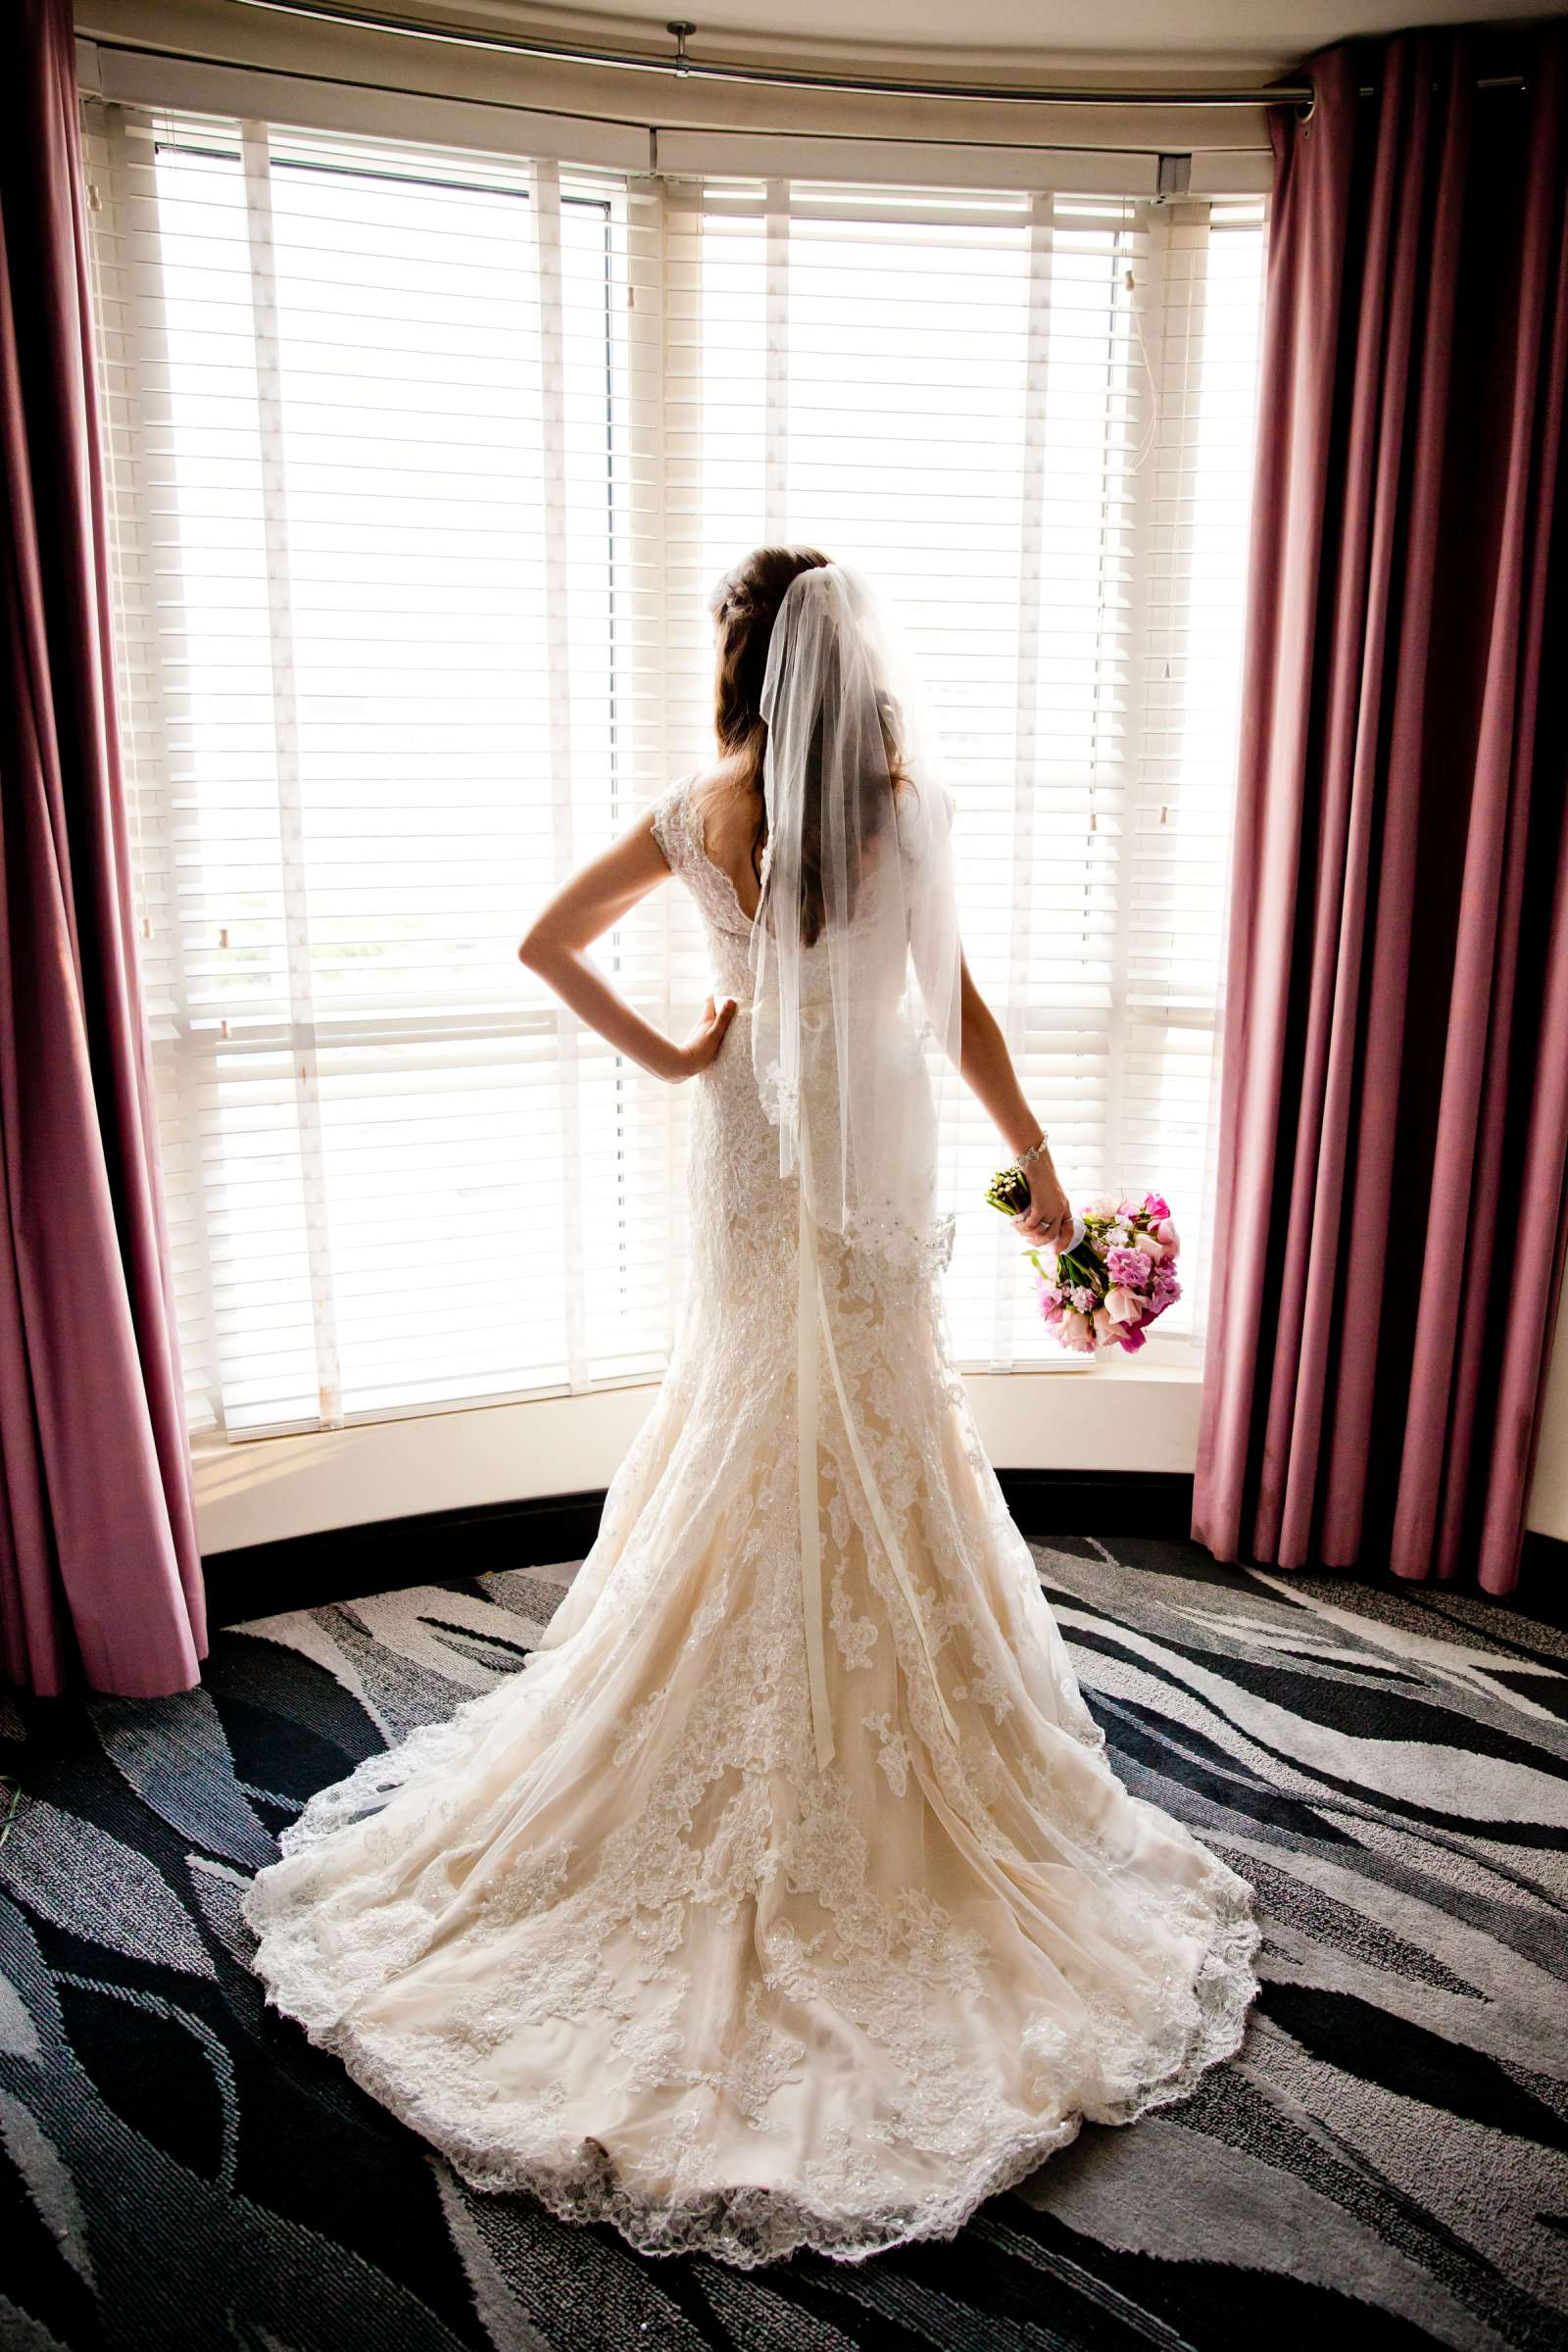 Wedding Dress at The Prado Wedding coordinated by First Comes Love Weddings & Events, Erin and Peter Wedding Photo #23 by True Photography